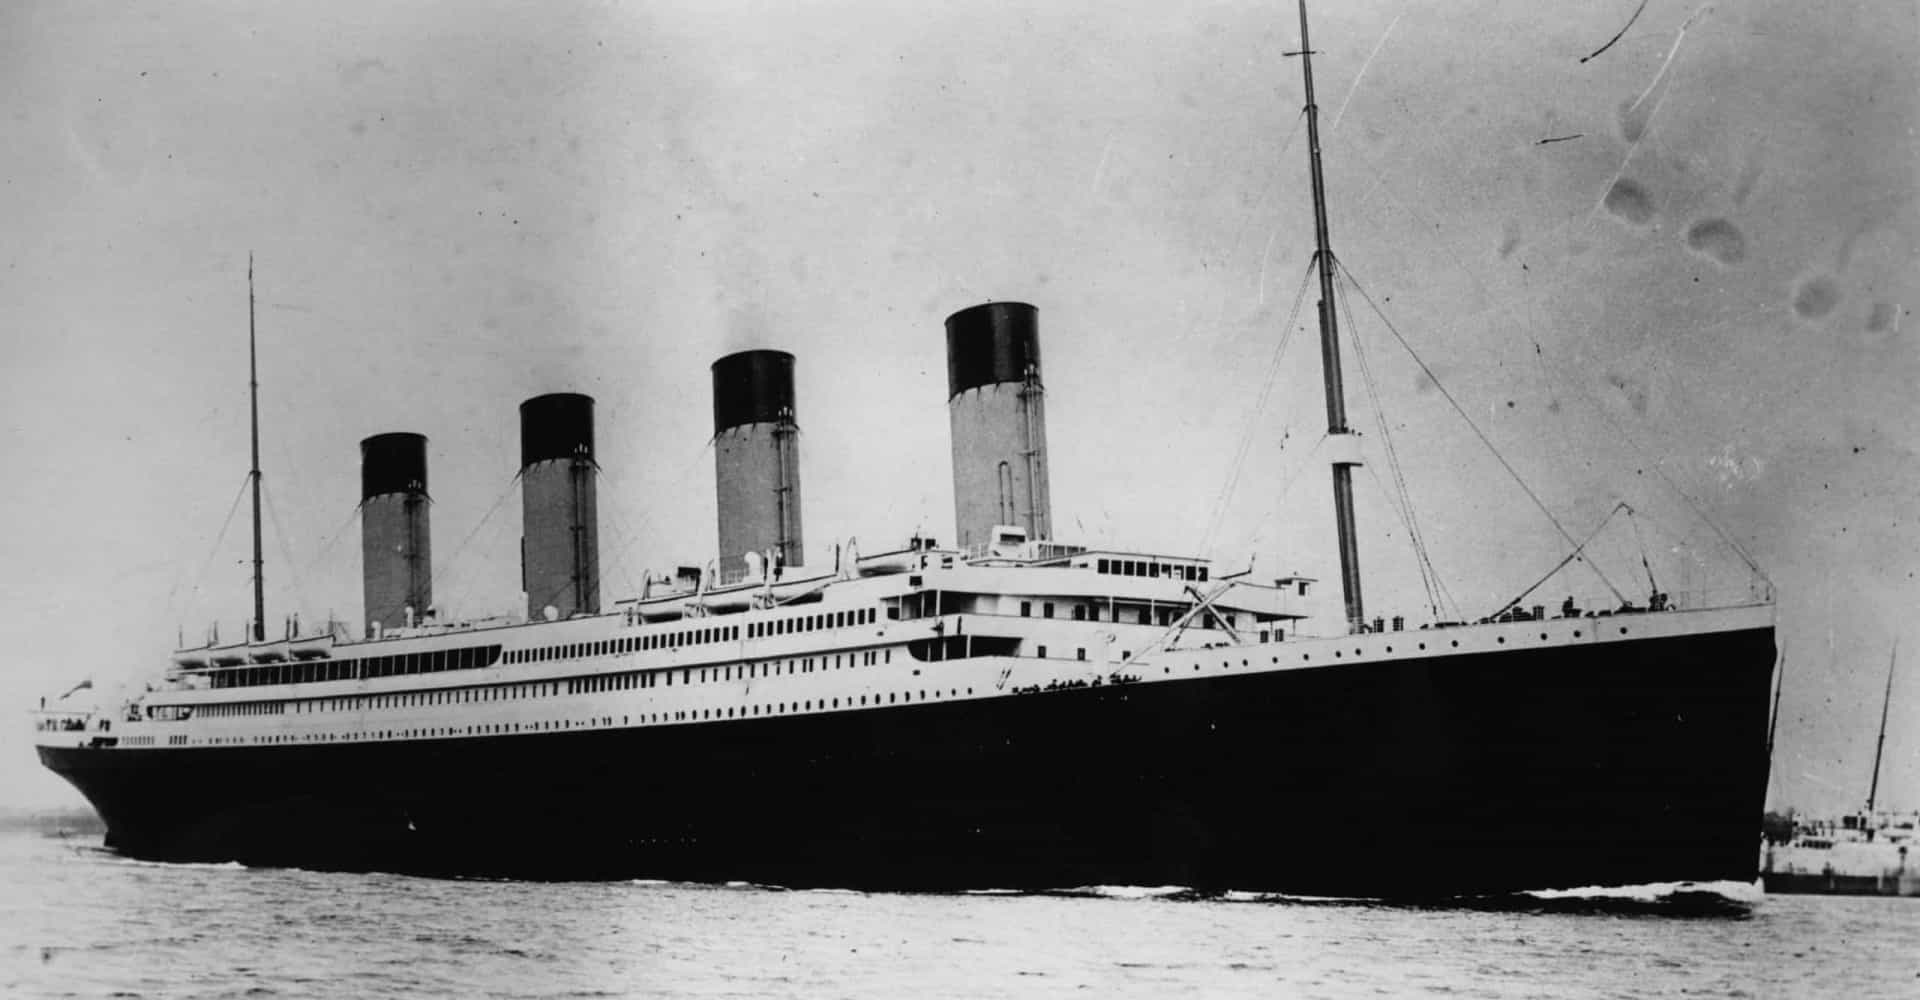 Surprising facts you didn't know about the Titanic